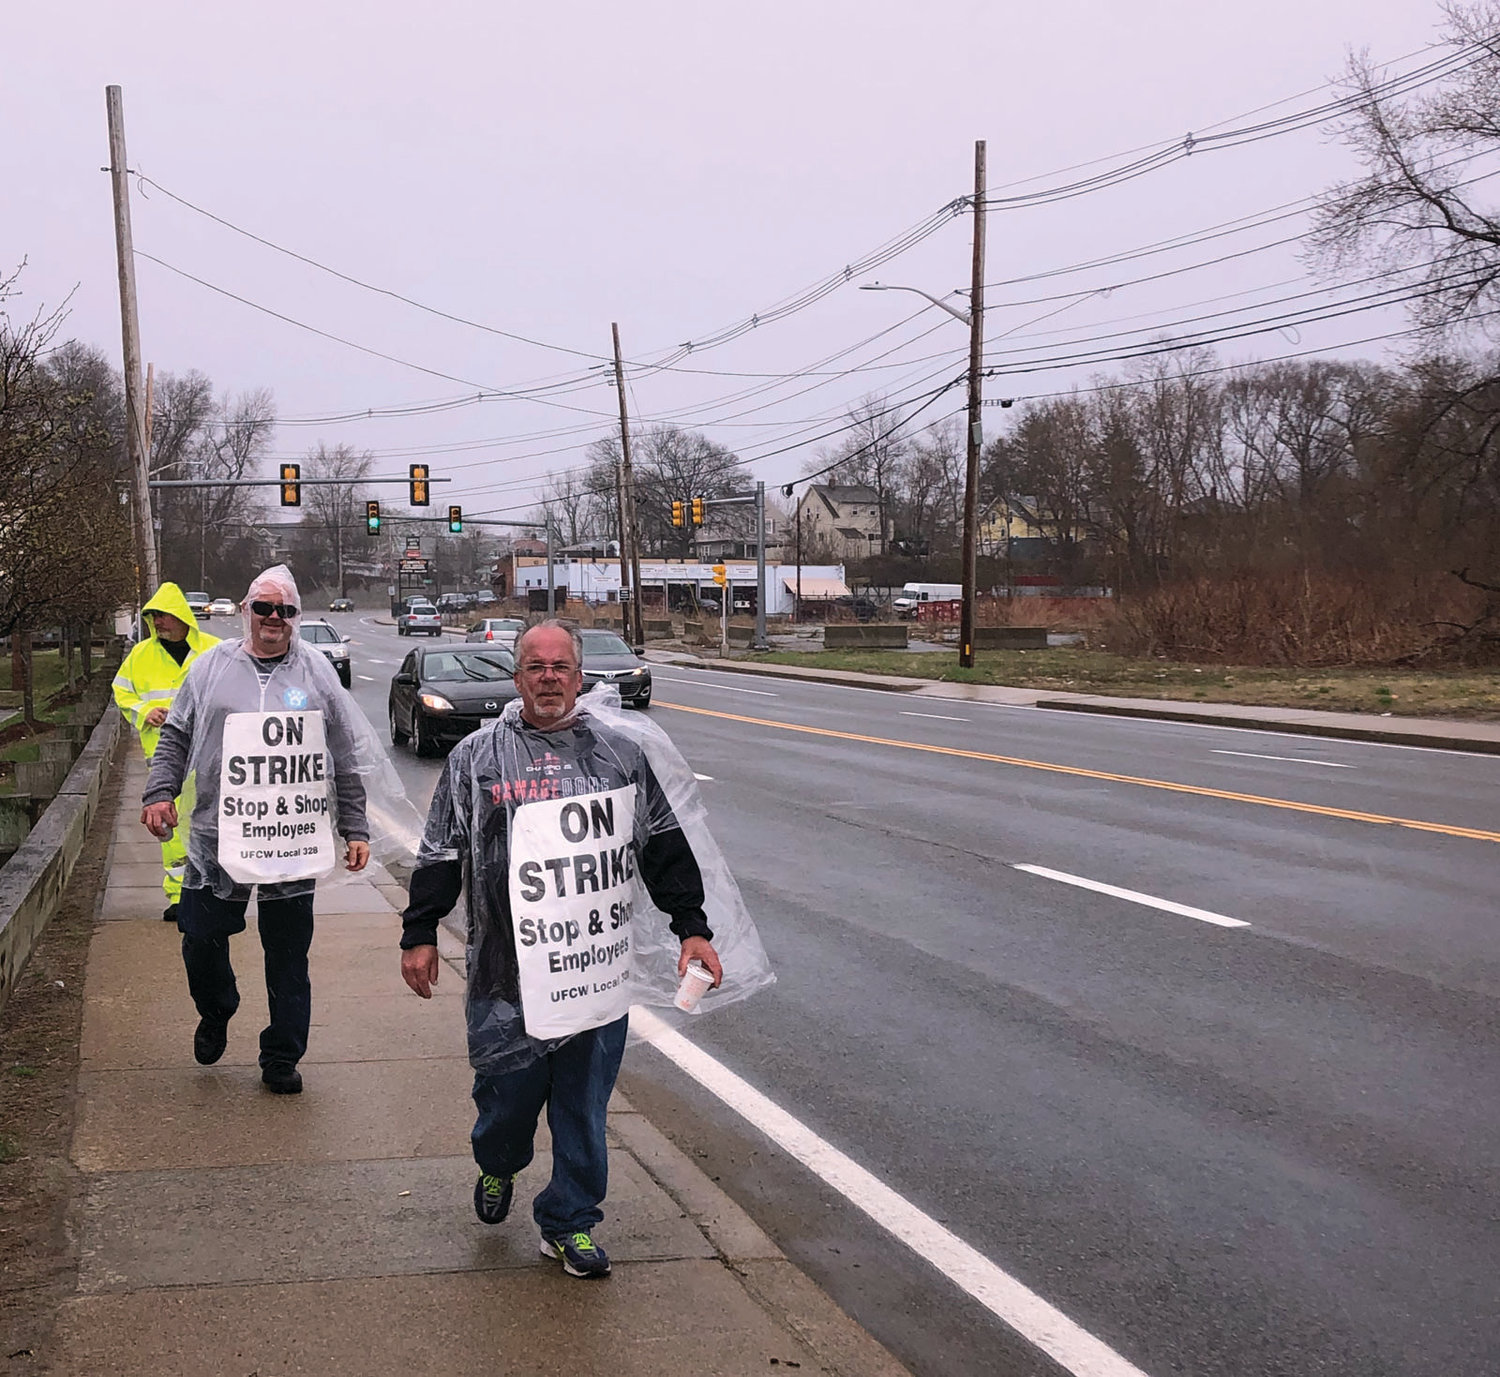 BRAVING THE ELEMENTS: Workers take part in a demonstration outside the Stop & Shop location on Warwick Avenue in Cranston on Friday. The strike entered its sixth day on Tuesday.